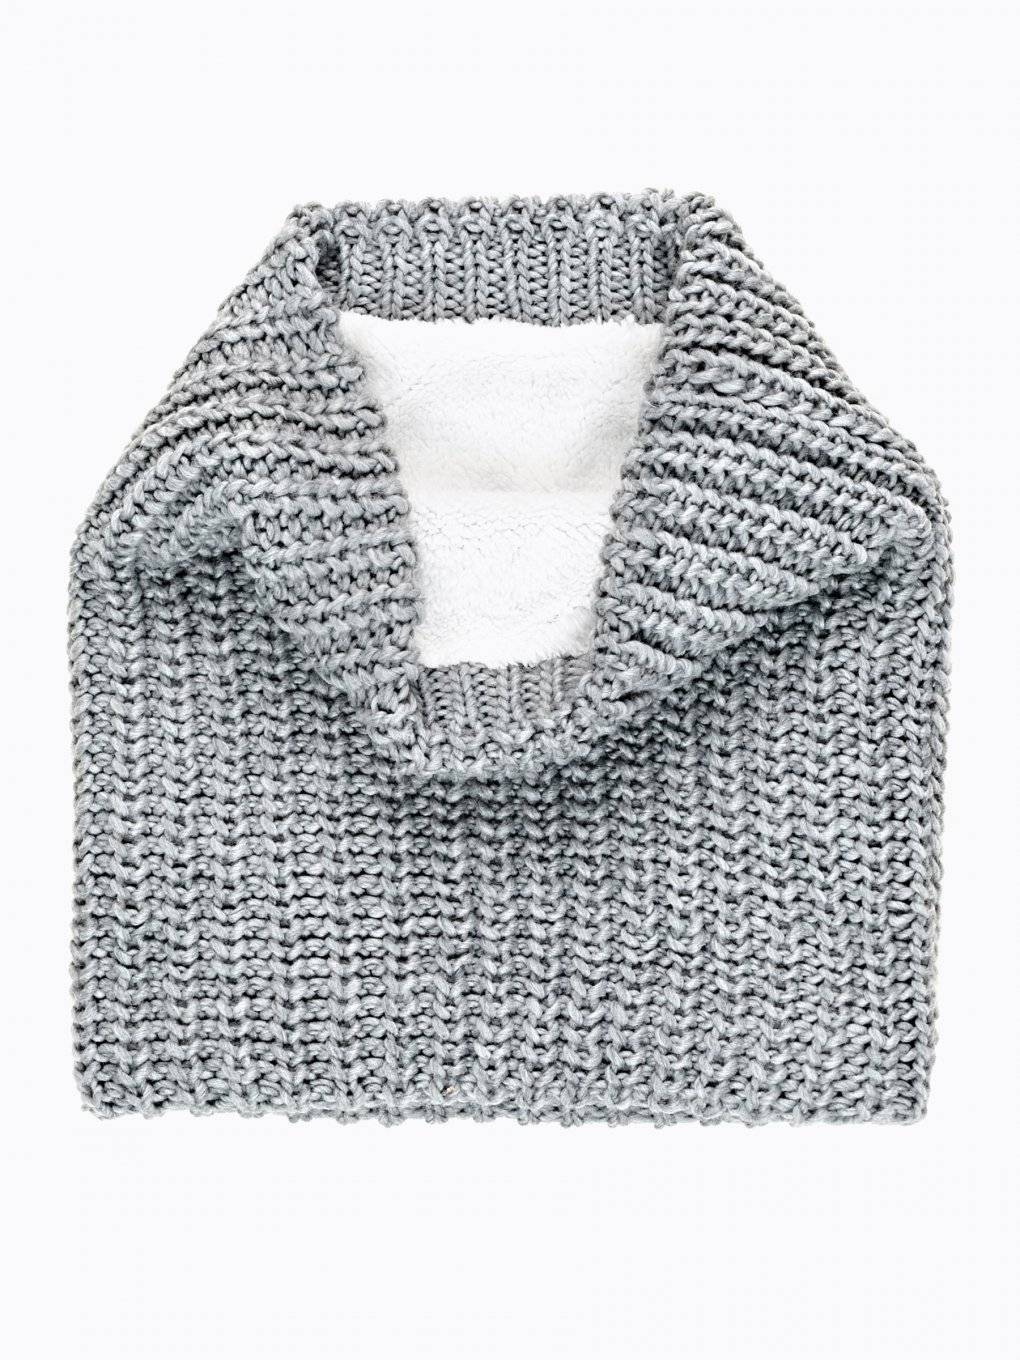 PILE LINED KNITTED SNOOD